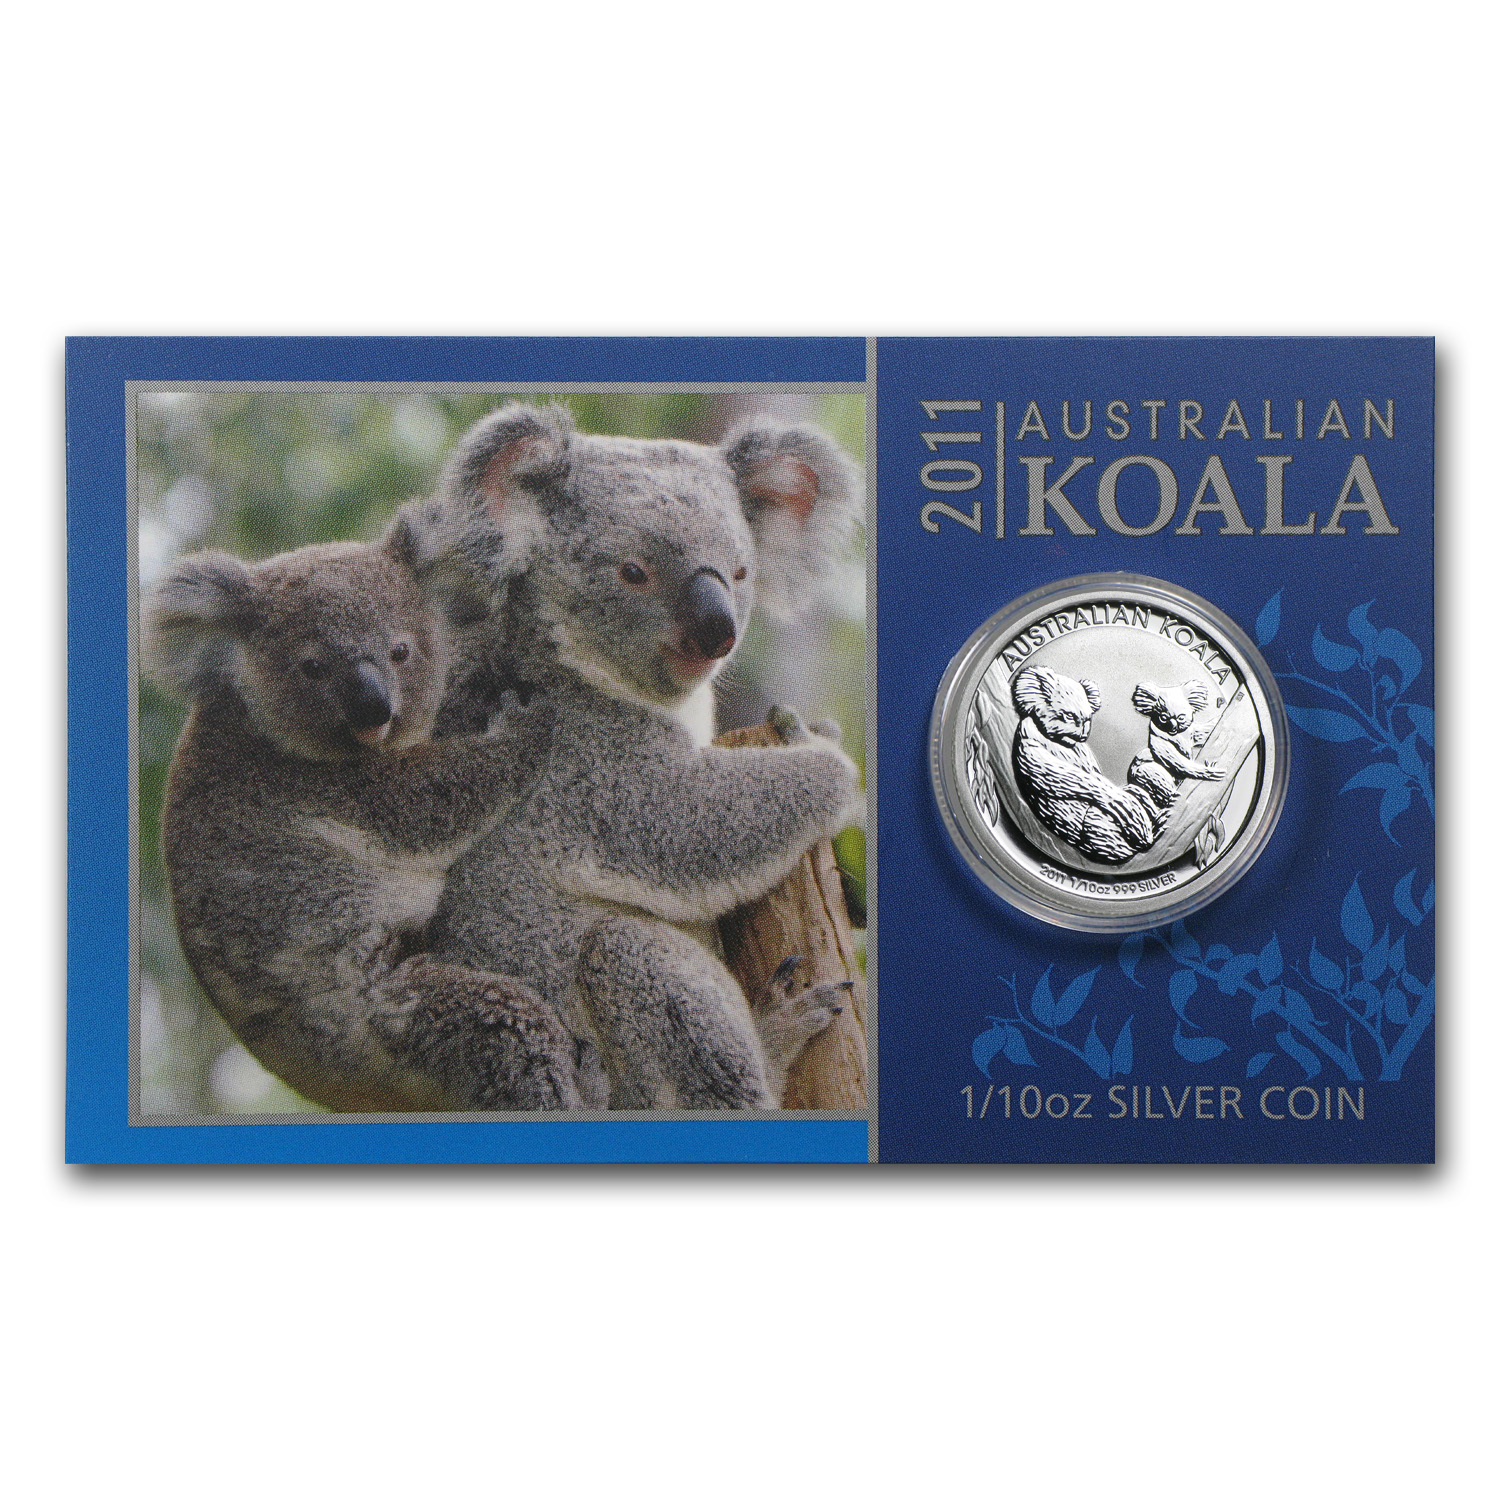 2011 Australia 1/10 oz Silver Koala BU (In display card)